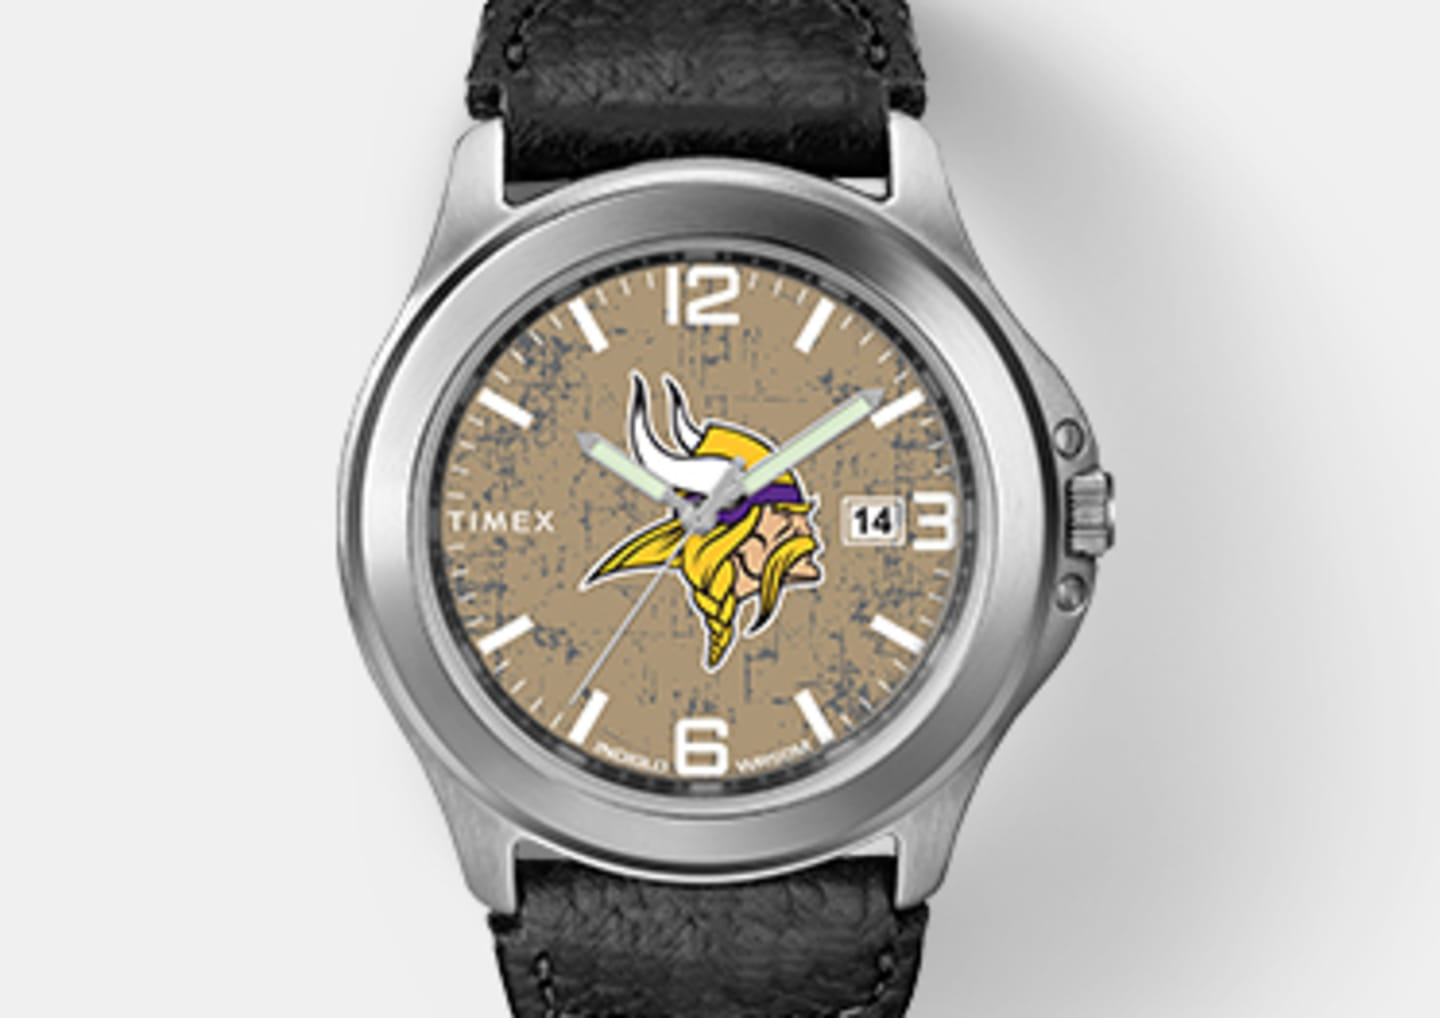 Silver Men's Vikings Watch With Black Straps and Viking Logo In The Center